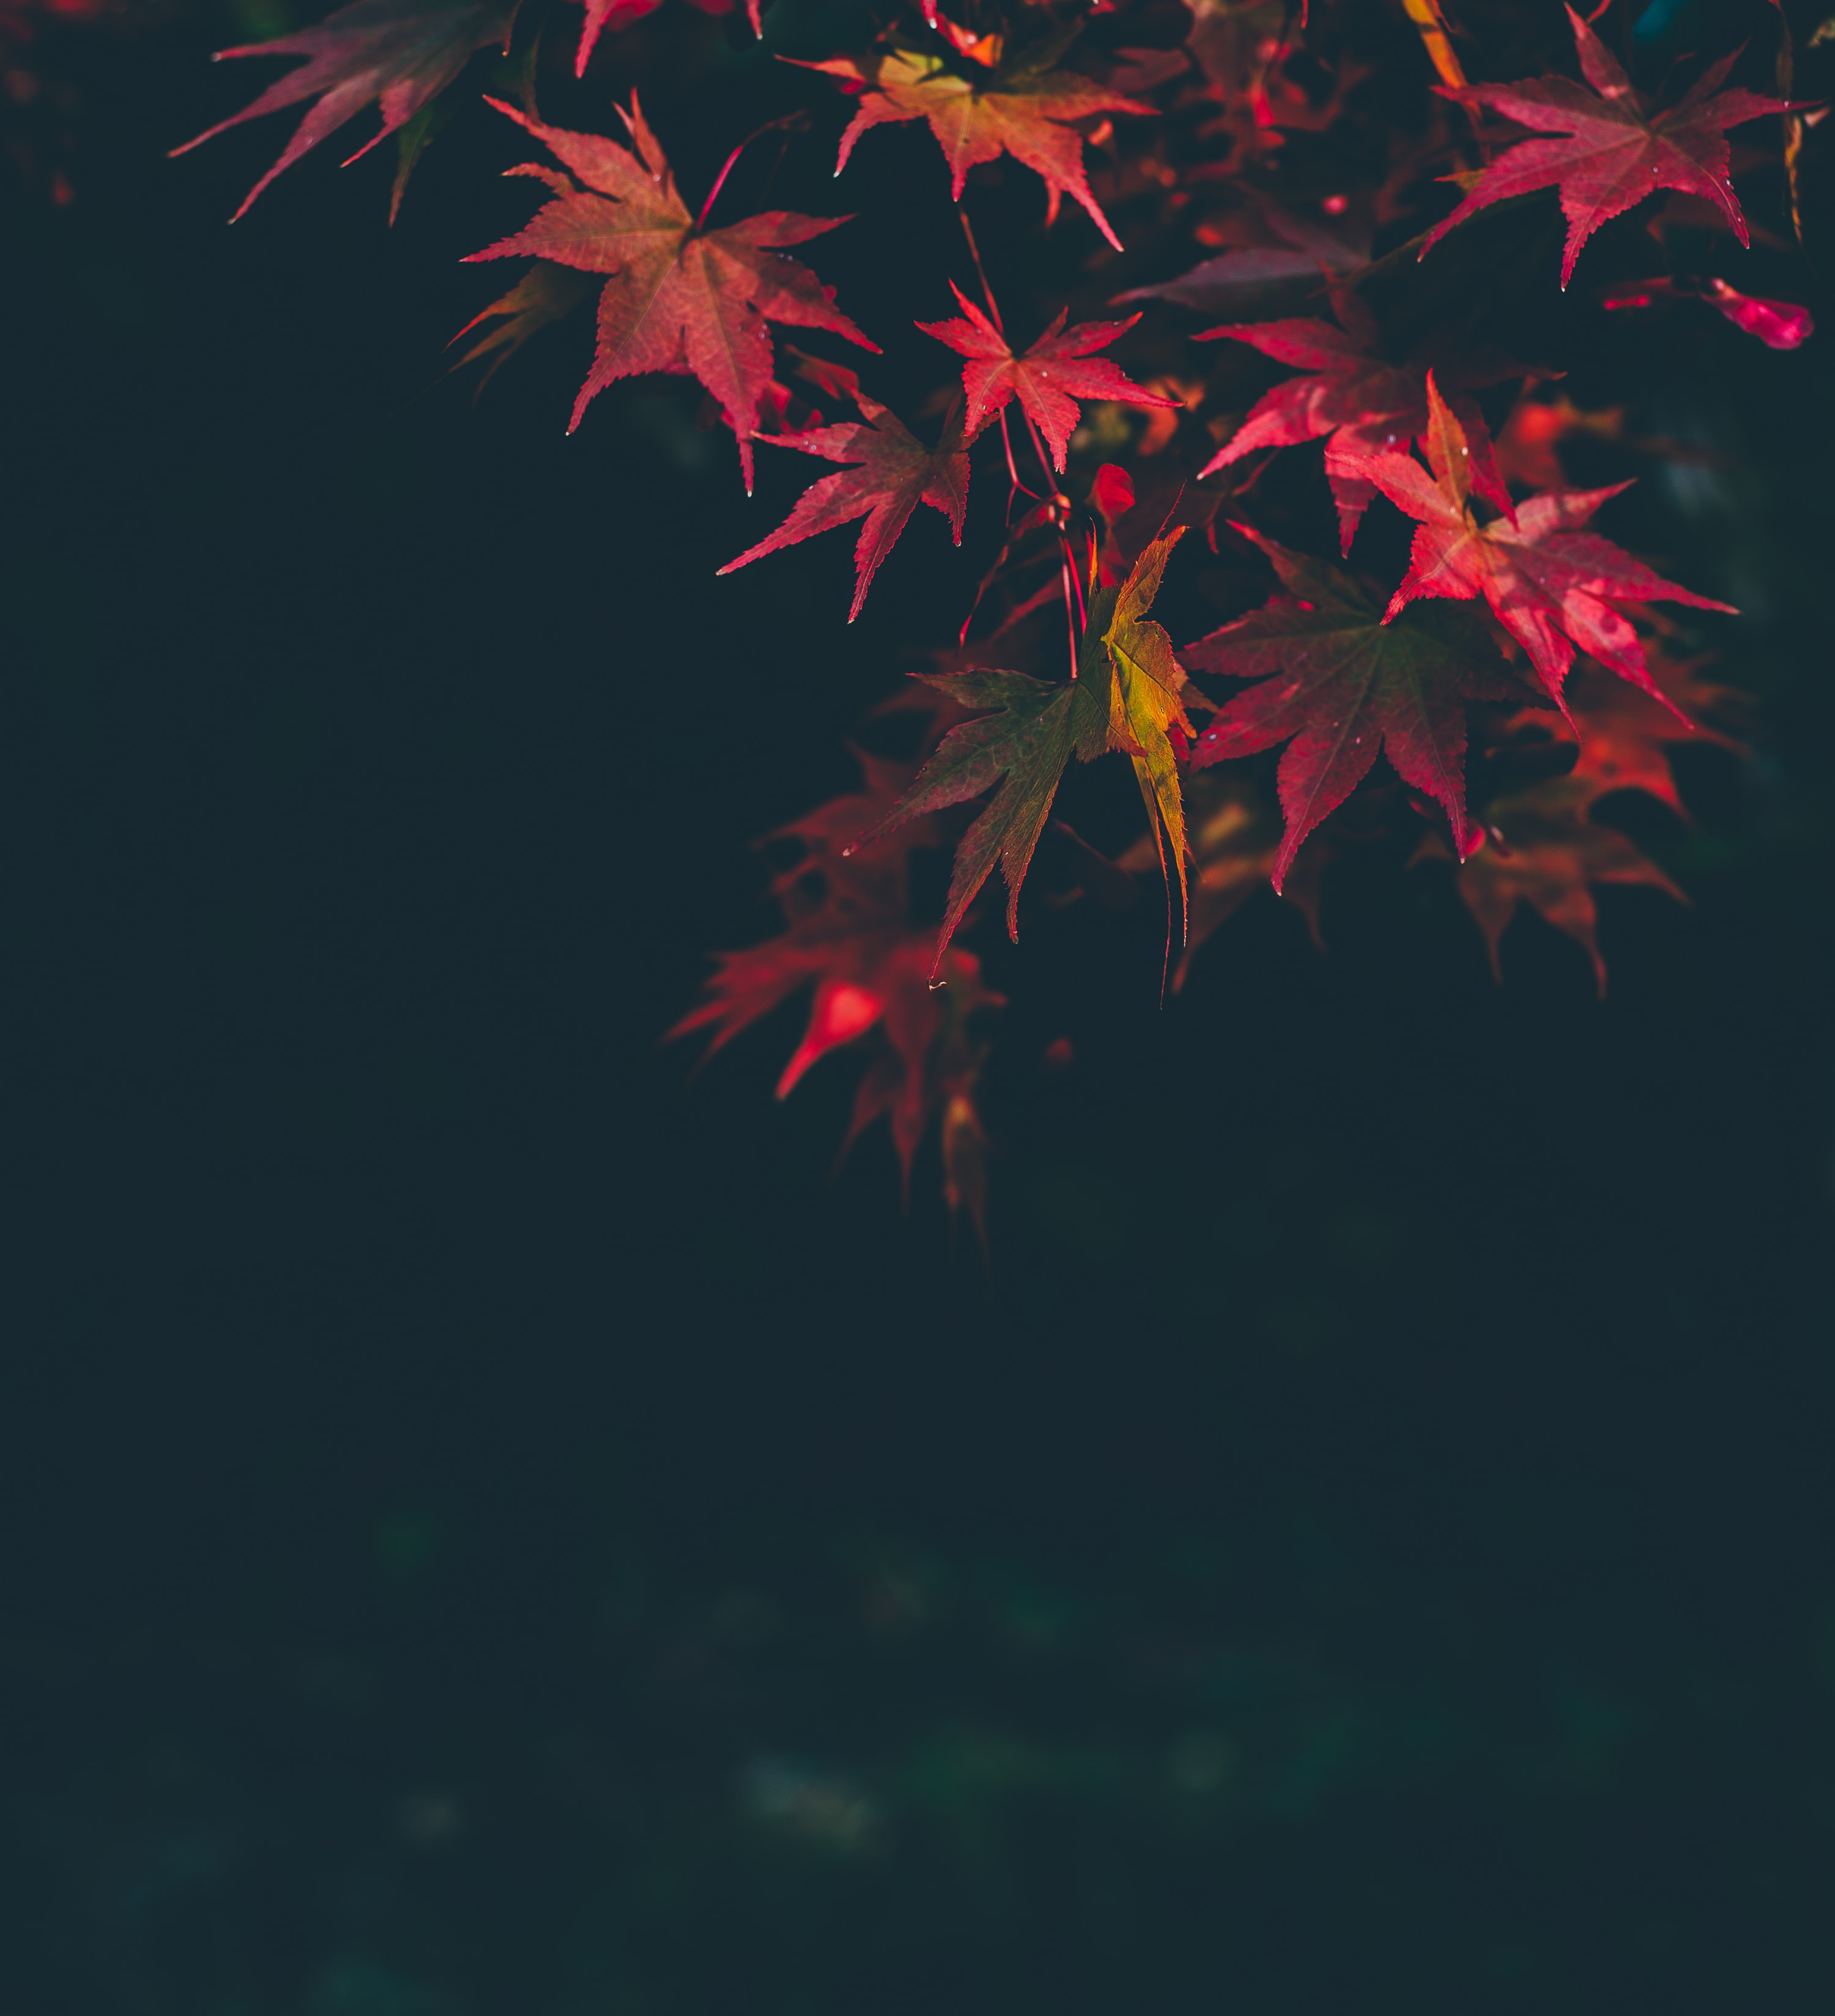 selective focus photography of red maple leafed tree